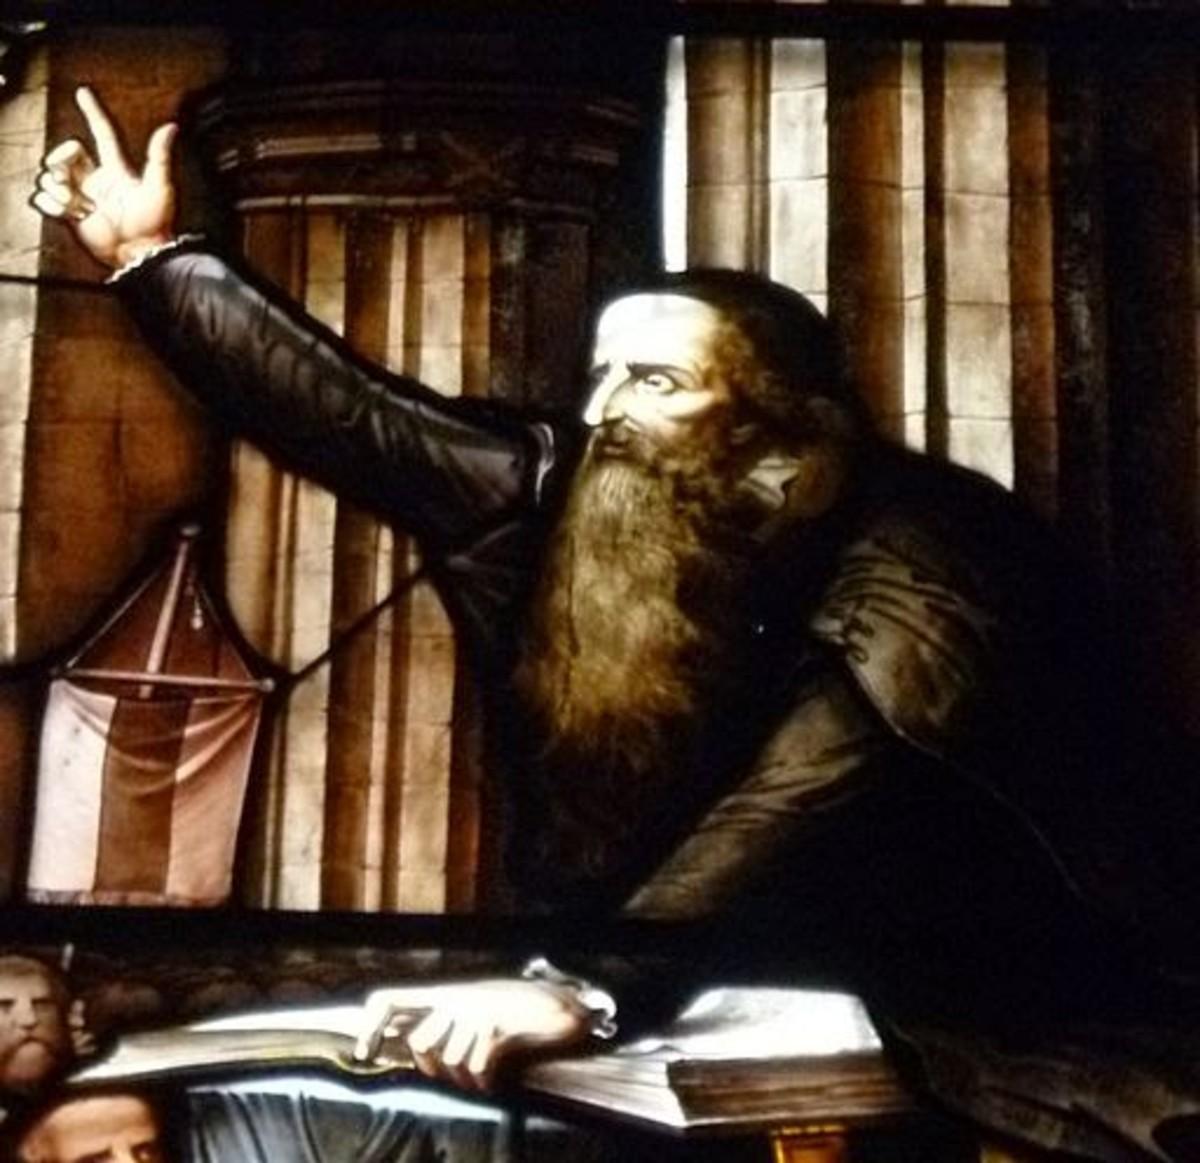 John Knox, Protestant reformer, preaching a sermon. Image from a stained glass window.